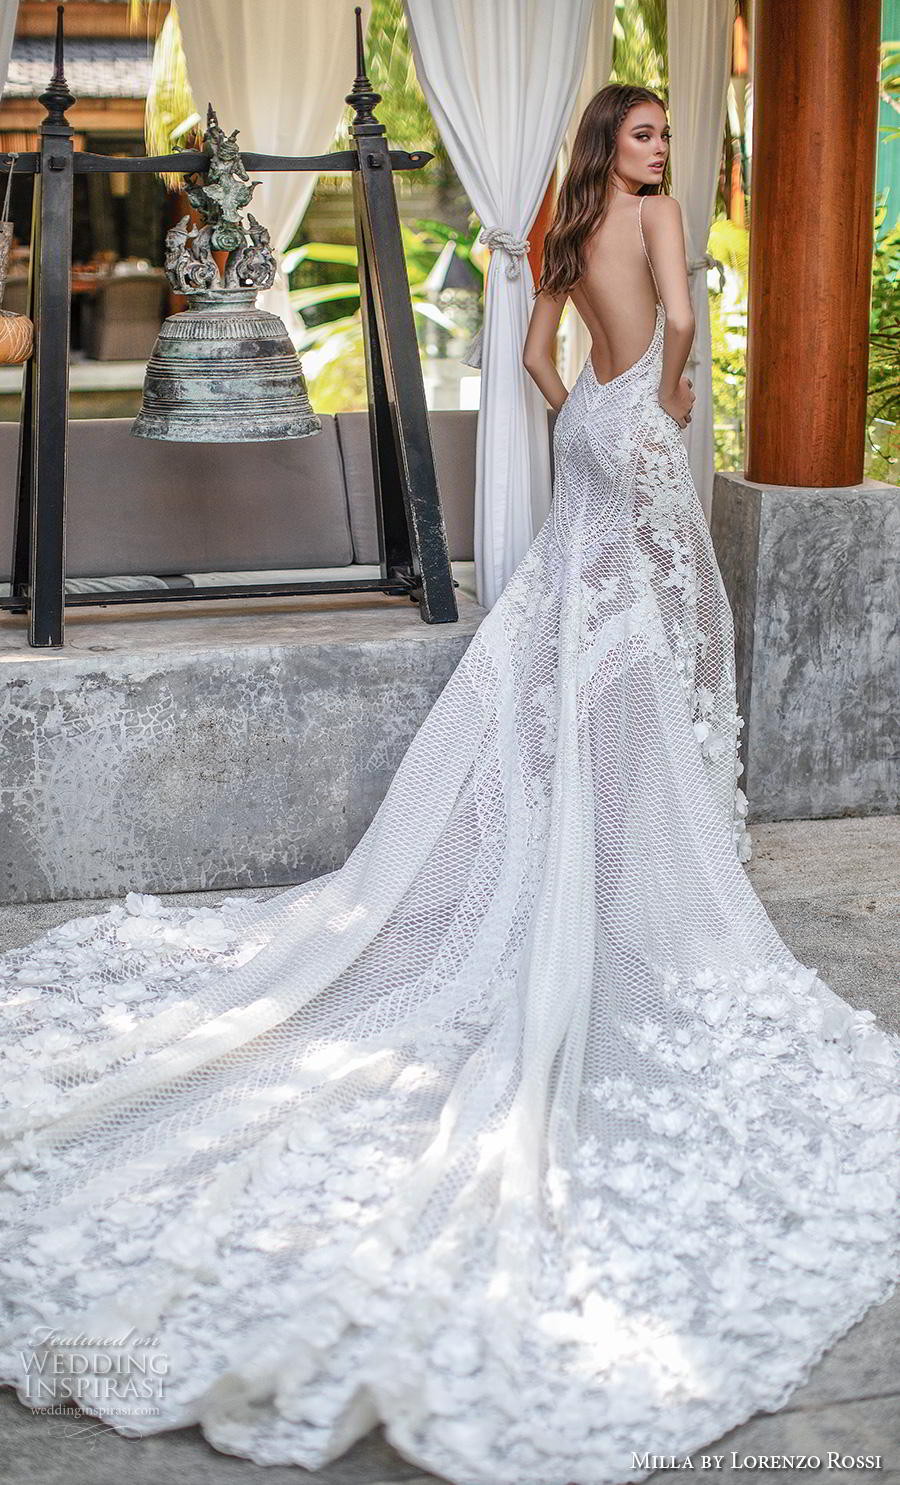 lorenzo rossi 2019 milla bridal sleeveless spaghetti strap deep plunging sweetheart neckline full embellishment sexy elegant fit and flare wedding dress low back royal train (5) bv